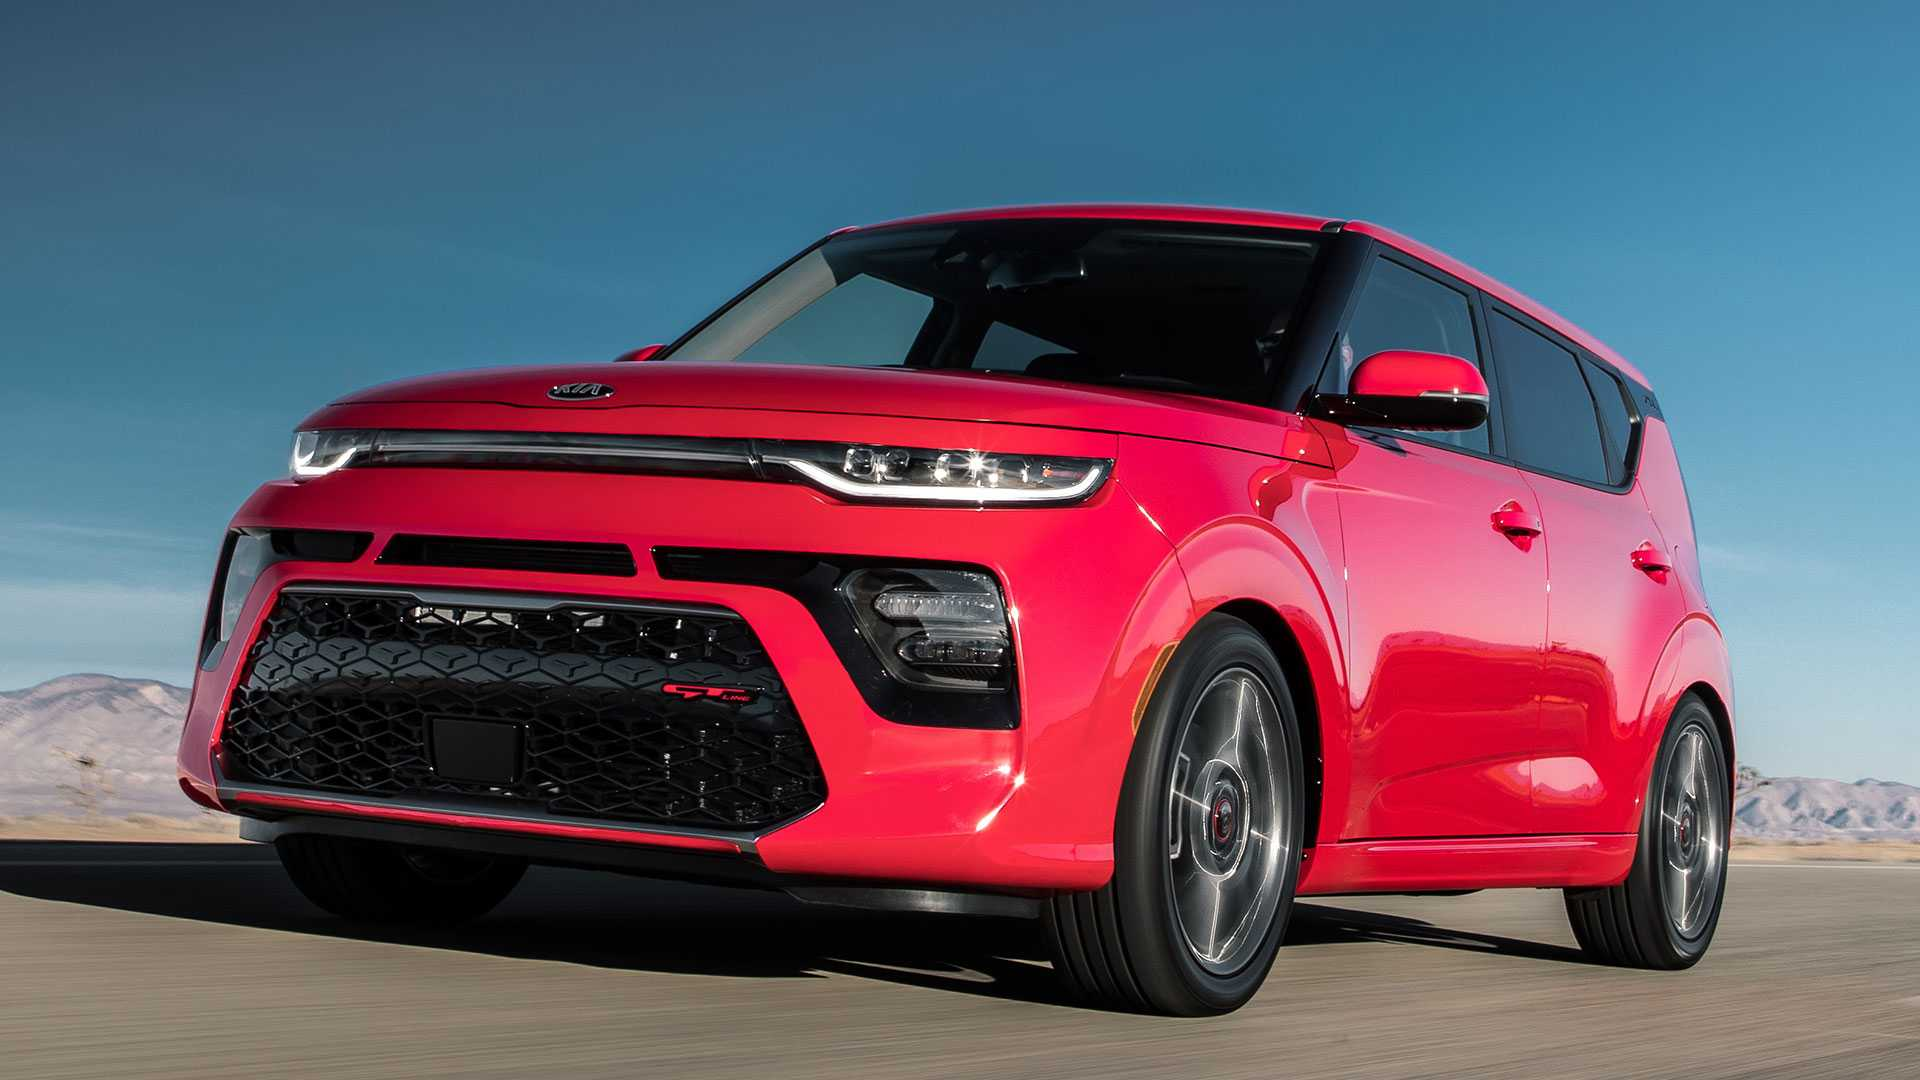 66 All New Kia Soul 2020 Uk Pricing with Kia Soul 2020 Uk